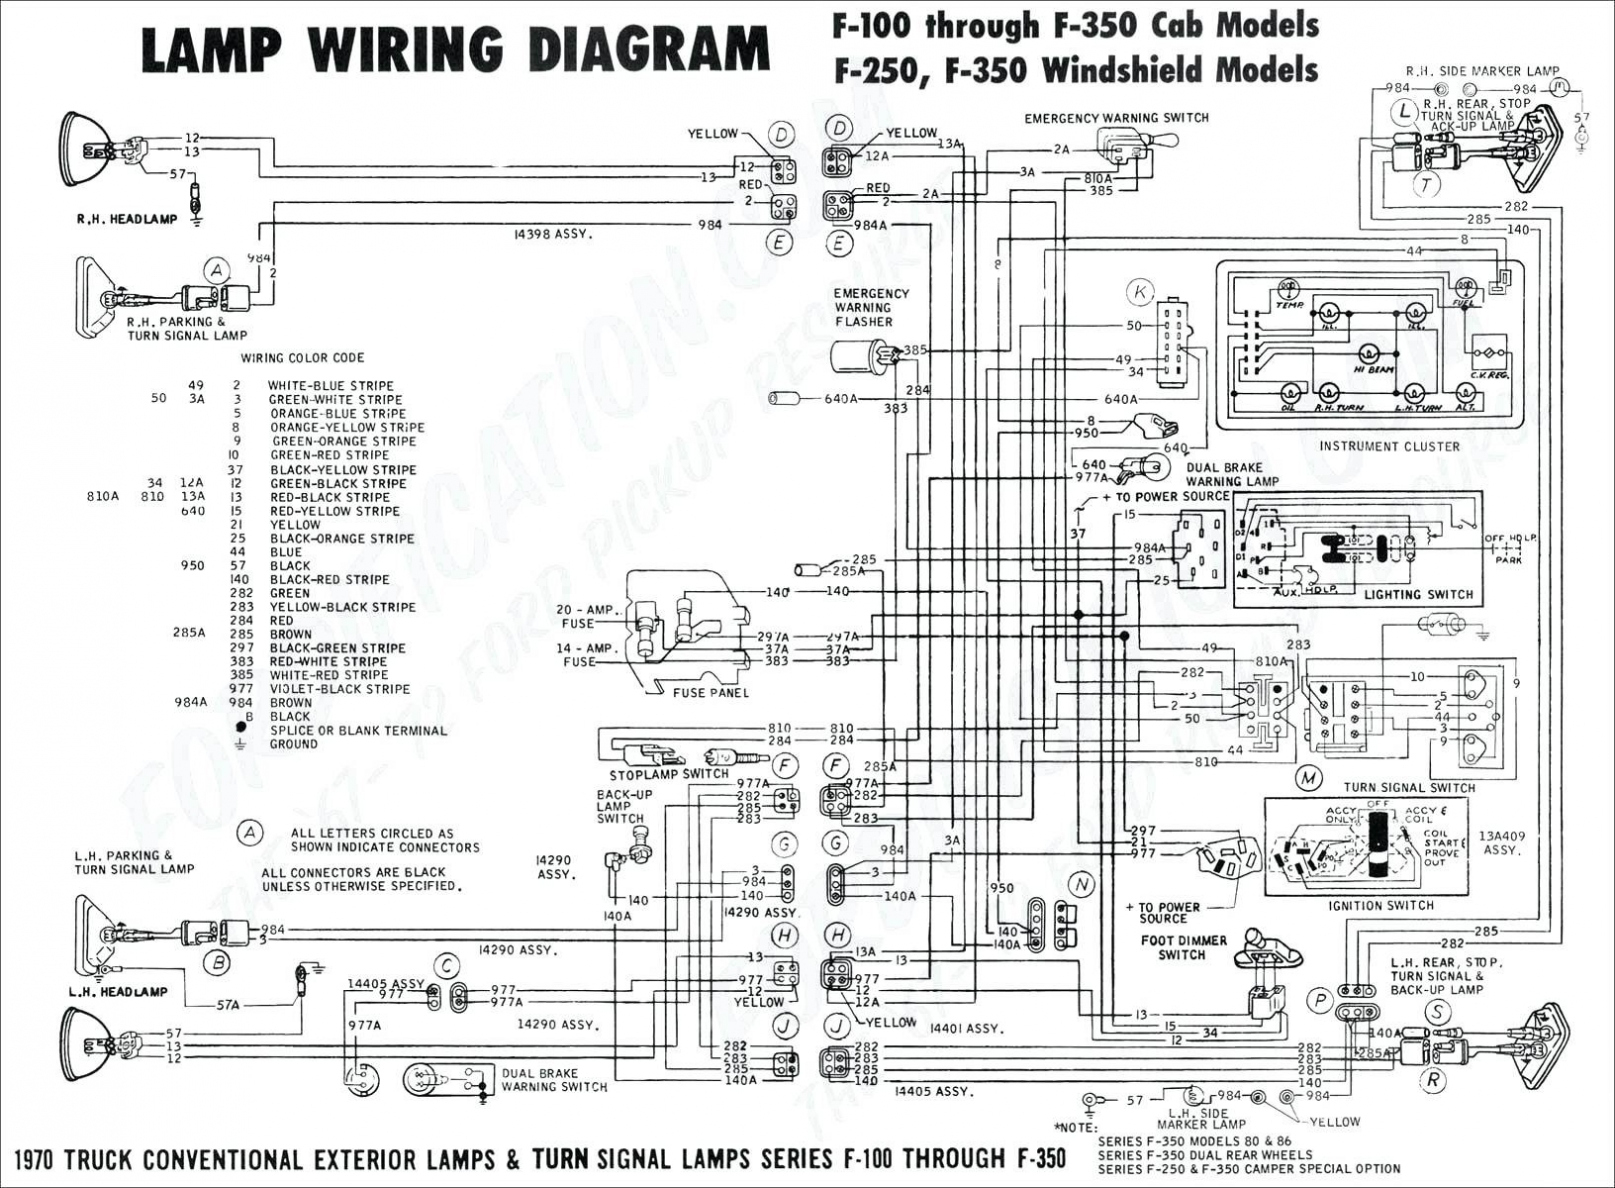 1969 F100 Wiring Diagram | Wiring Diagram F Wiring Schematics on